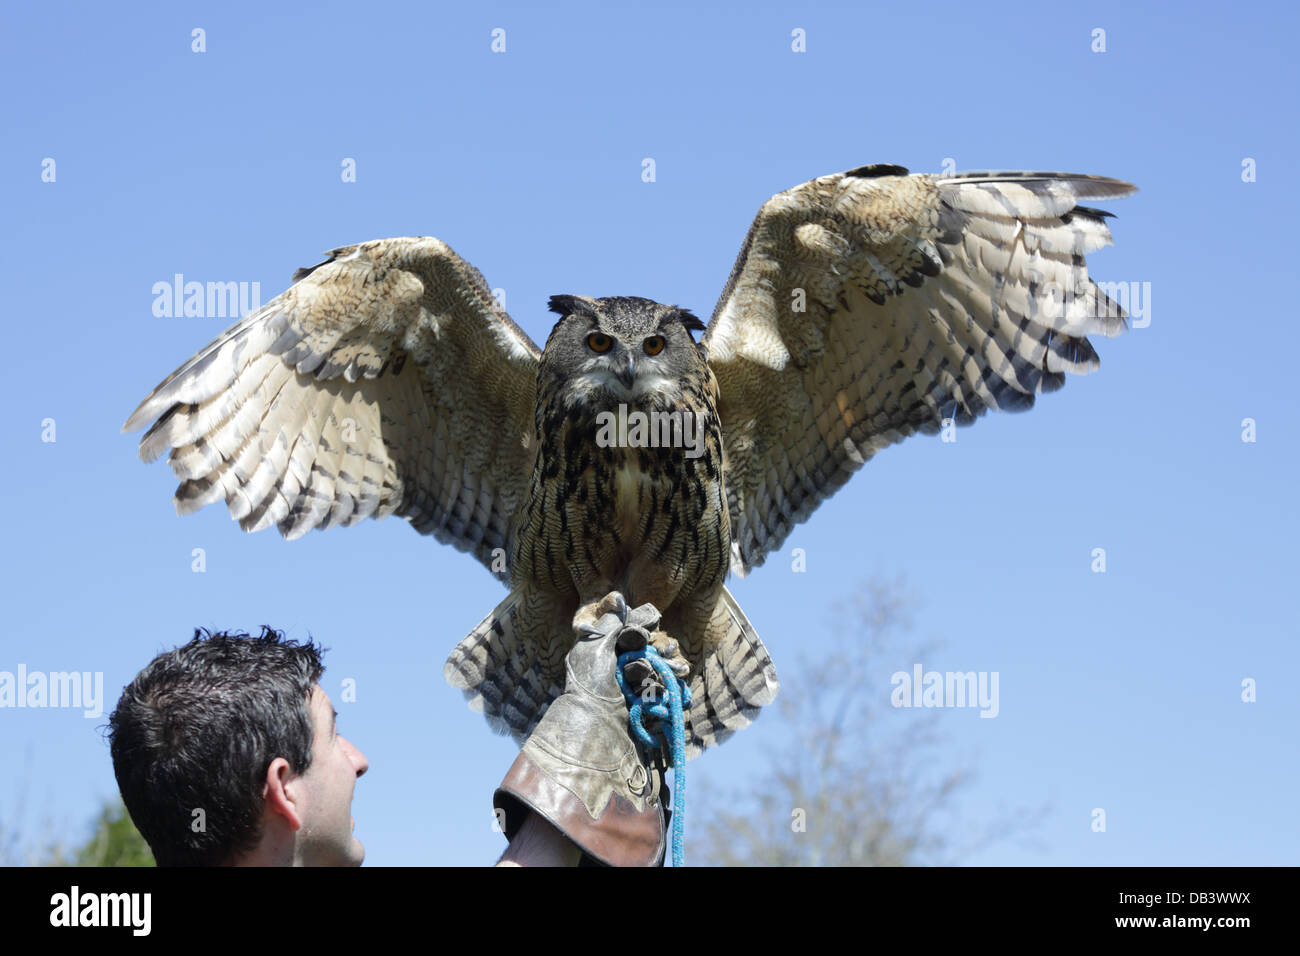 Eagle Owl; Bubo bubo; and Handler; UK - Stock Image